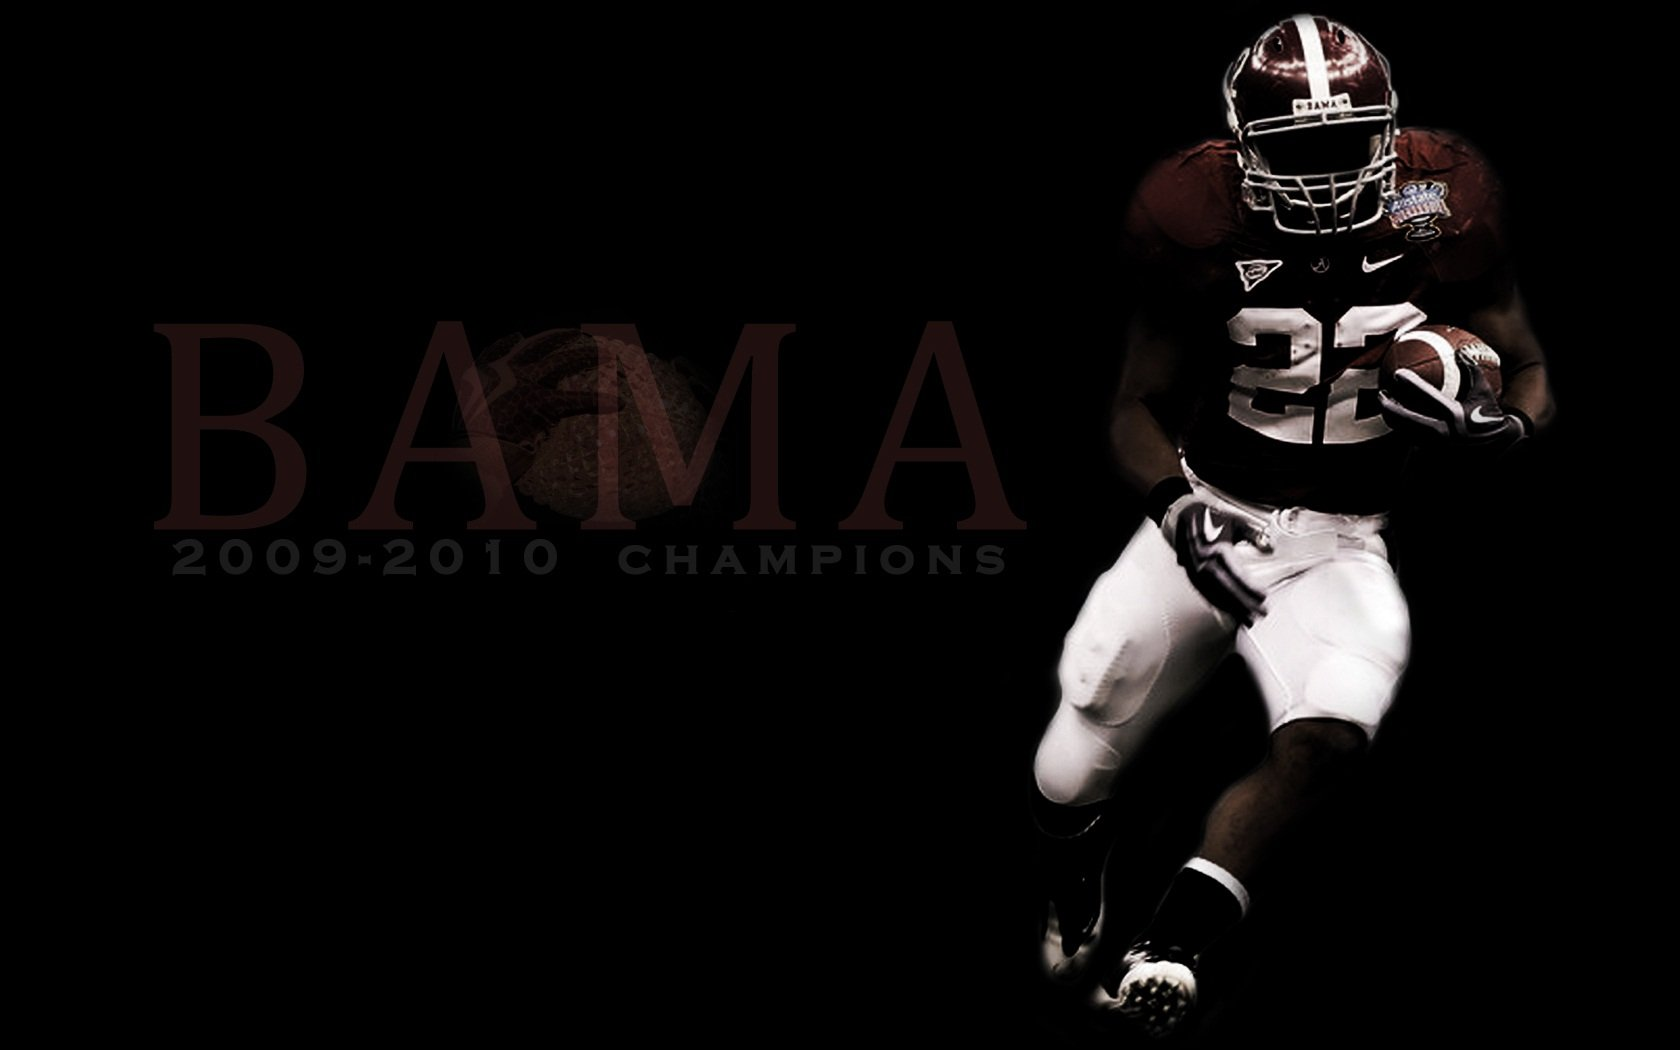 funyloolcomalabama ncaa wallpaper background theme desktop freehtml 1680x1050